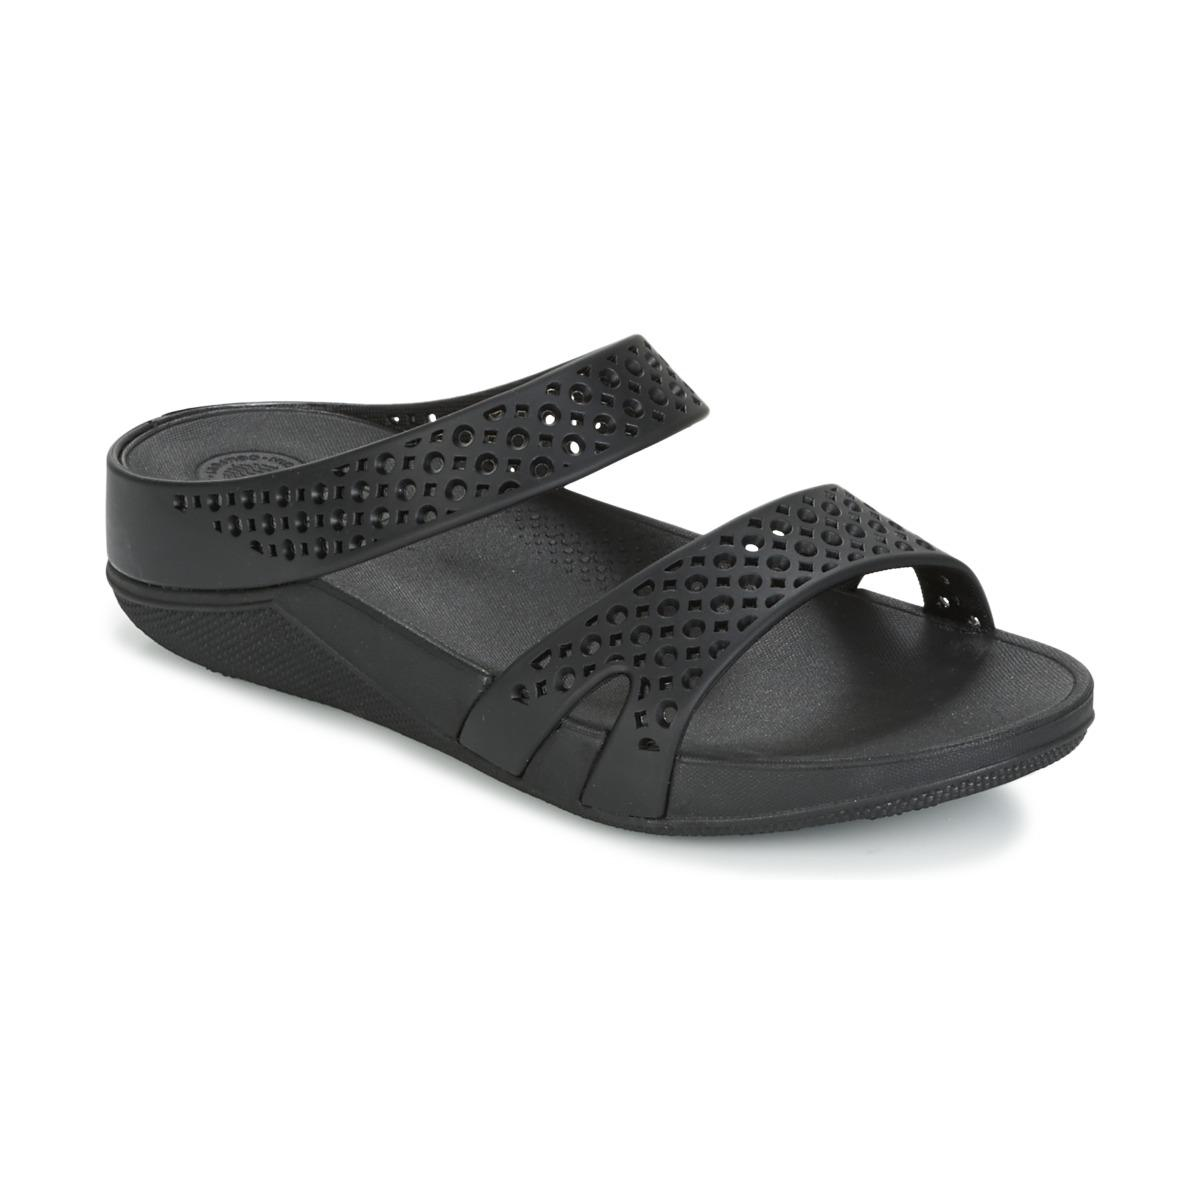 Discount Fitflop Welljelly Zslide Sandal Mules All / Black For Women